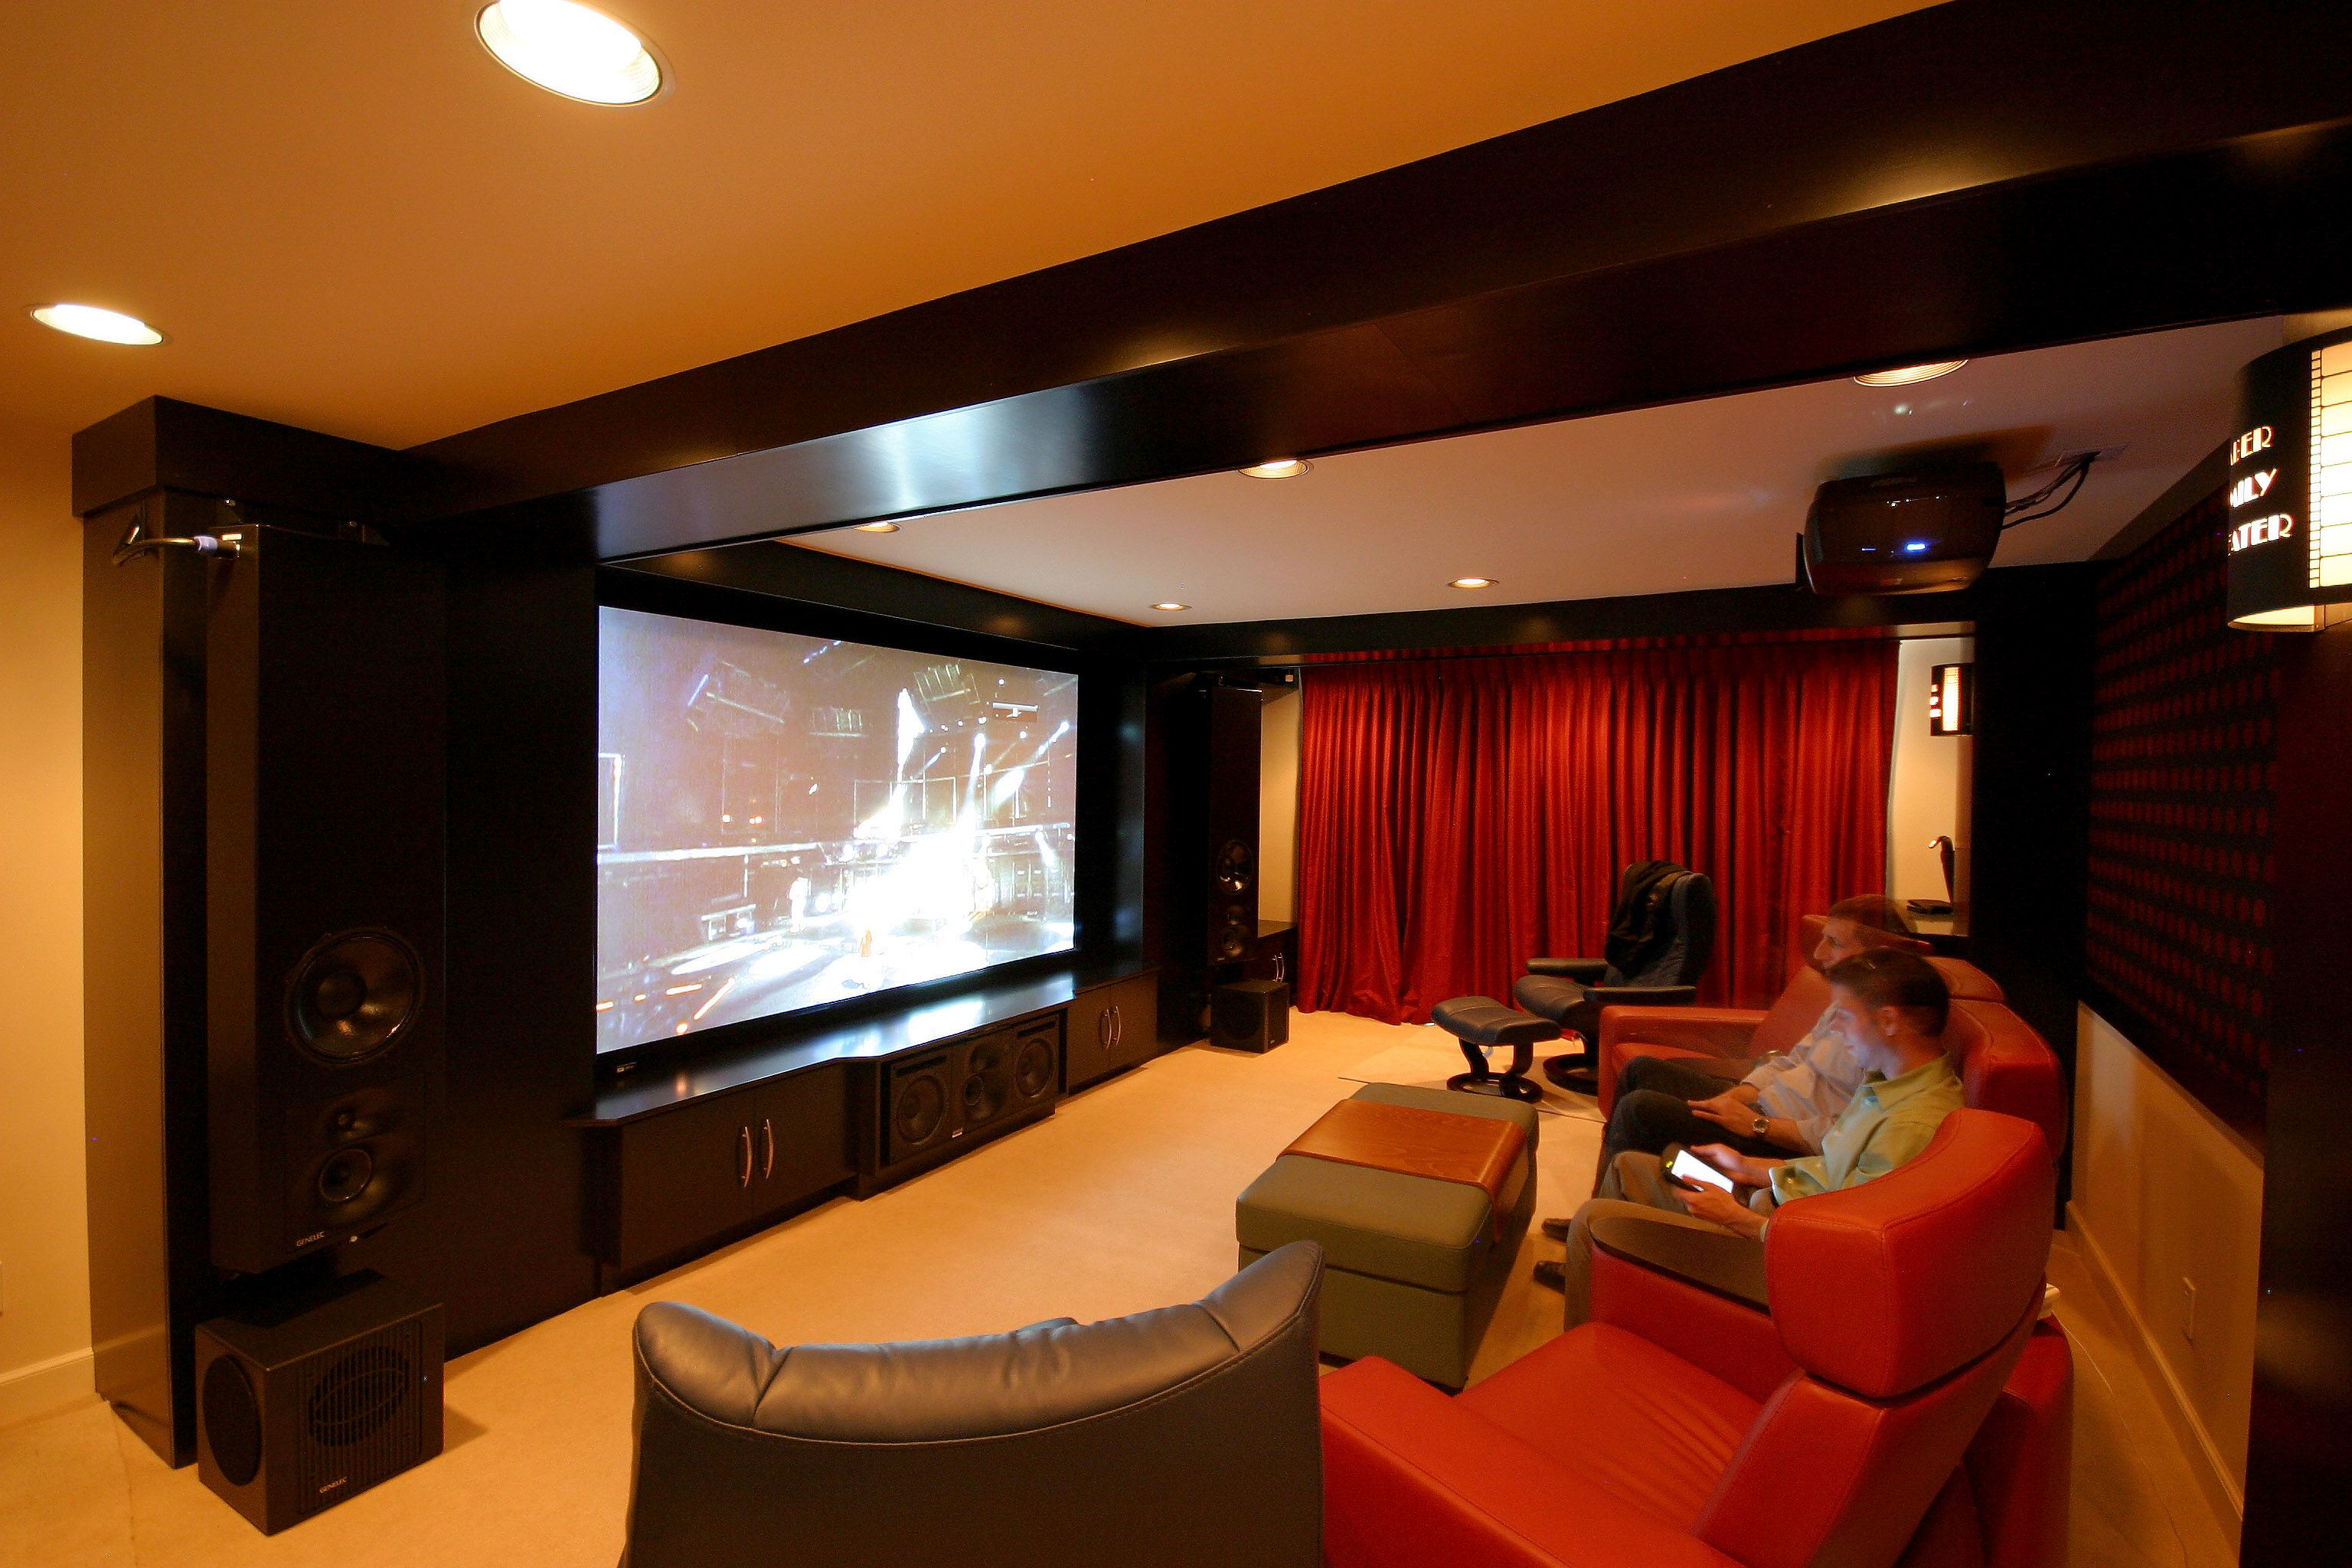 How to make home theater room - 15 Awesome Basement Home Theater Cinema Room Ideas